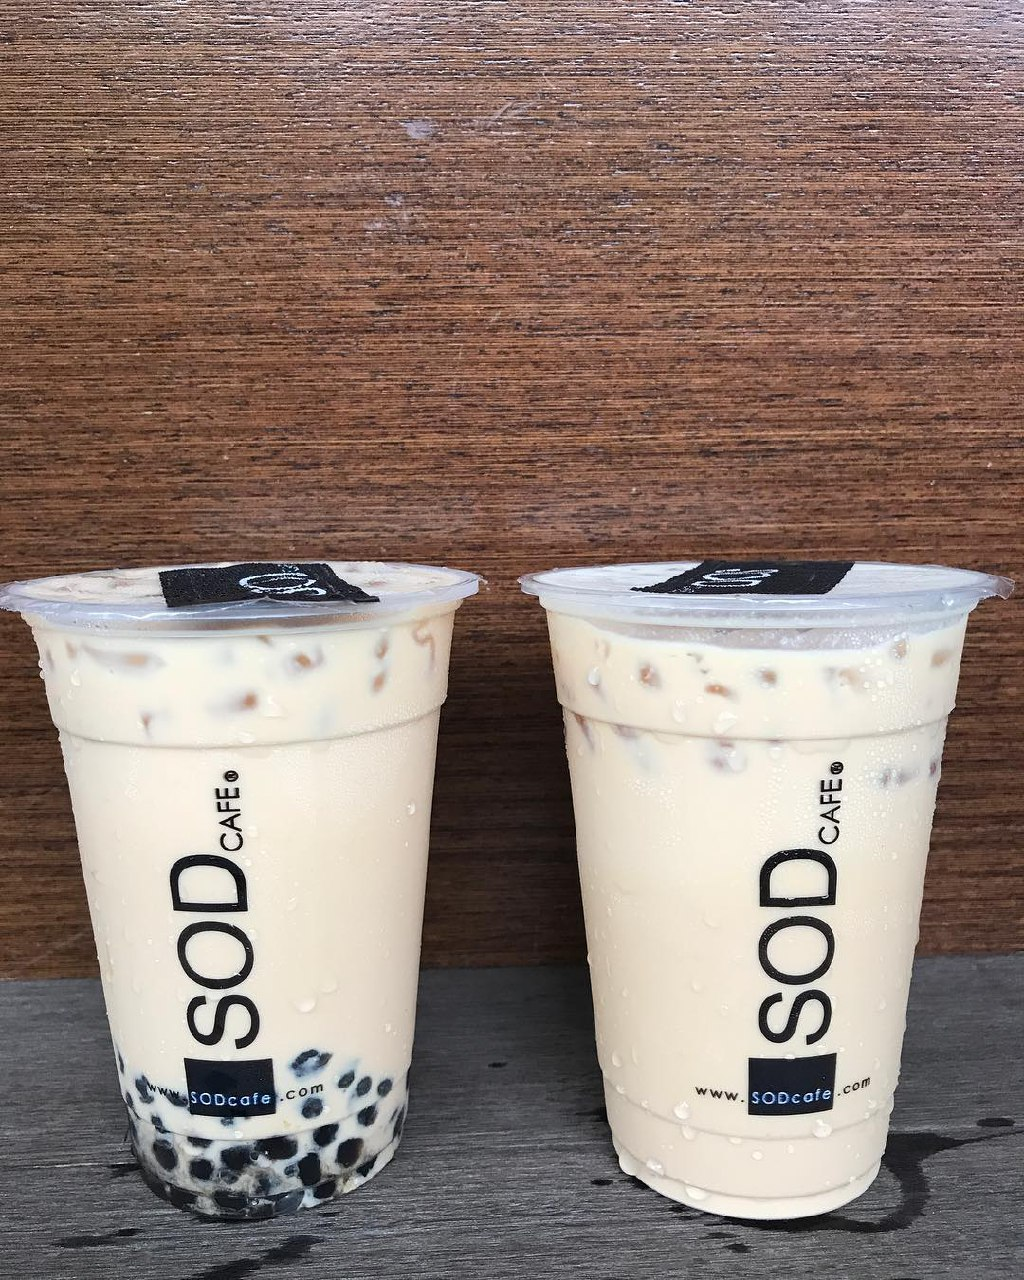 sod cafe bubble tea delivery